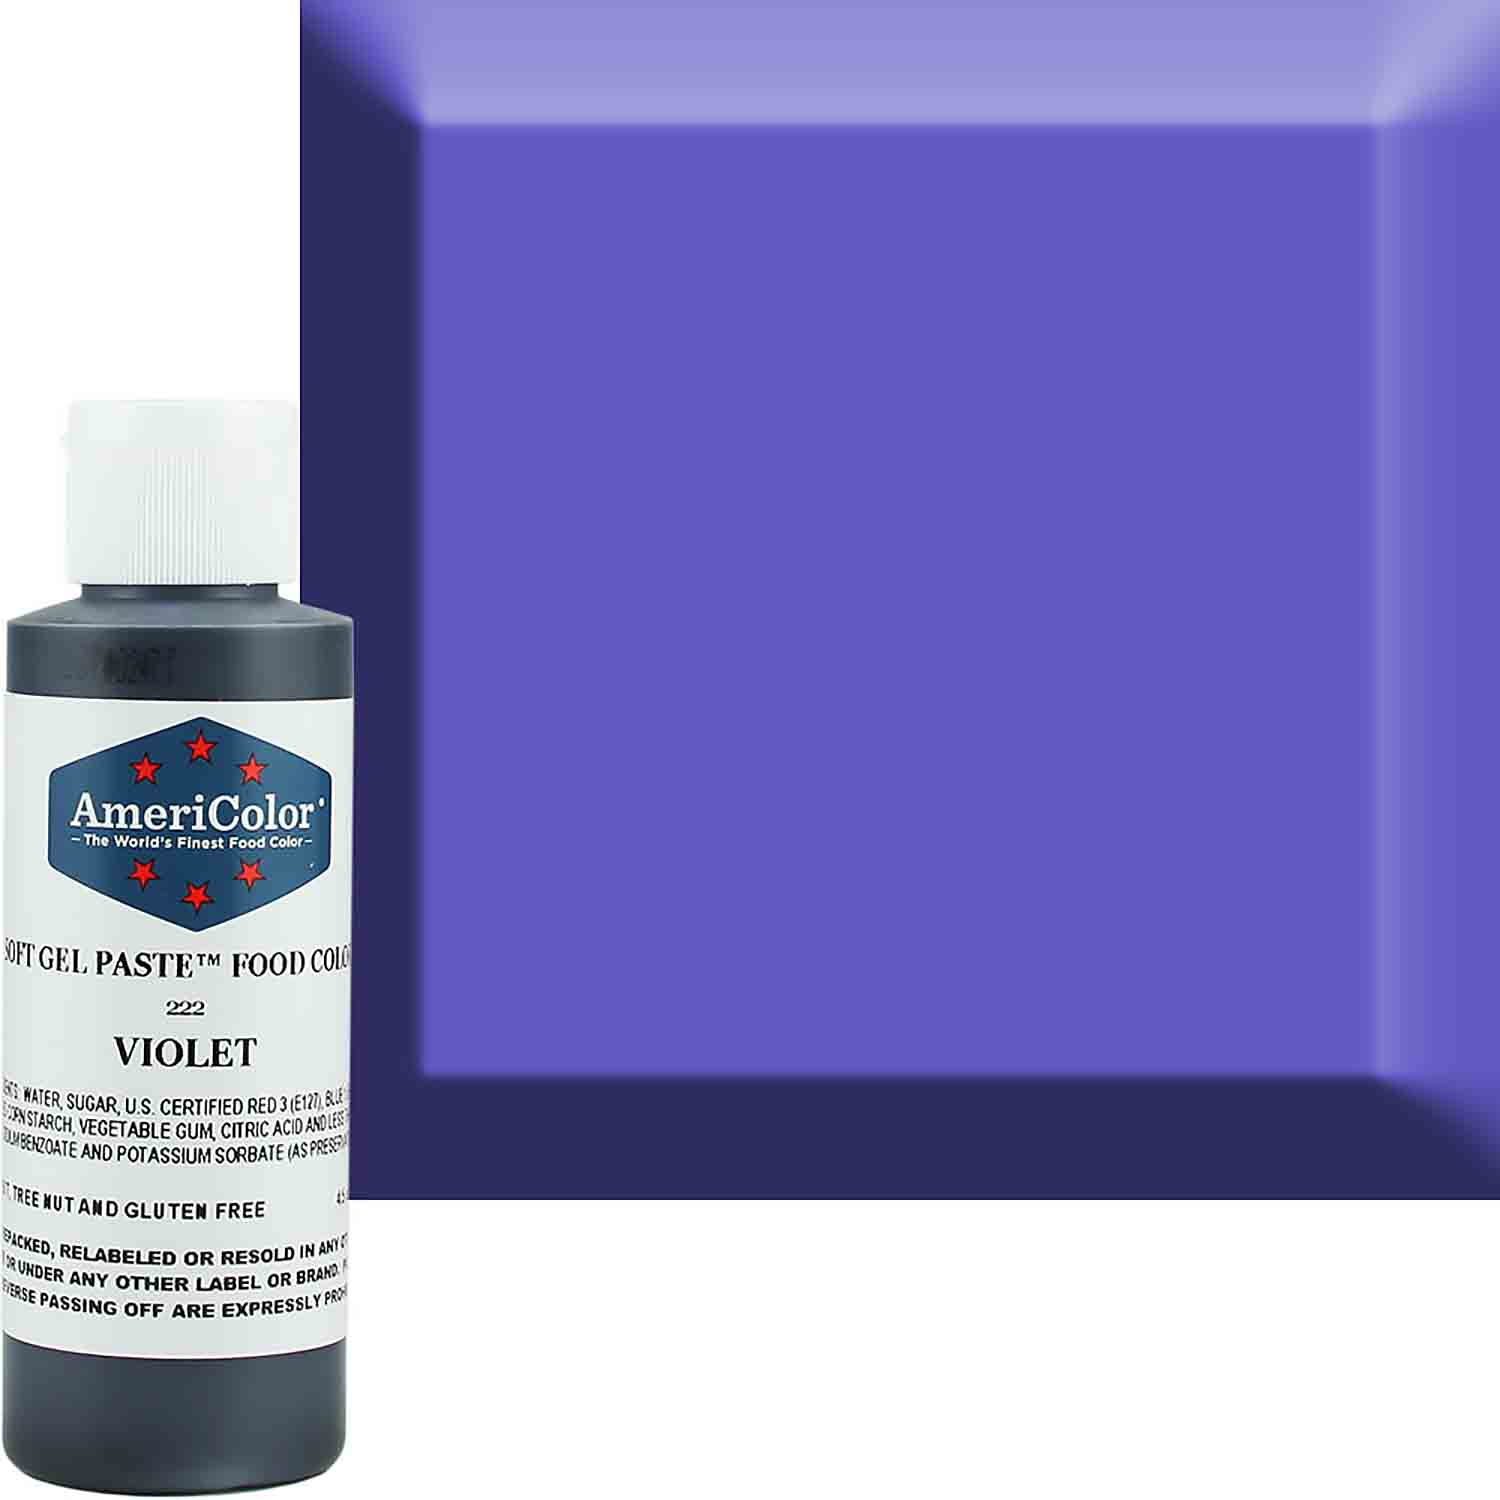 Violet Americolor® Soft Gel Paste Food Color (Old # 41-7822)